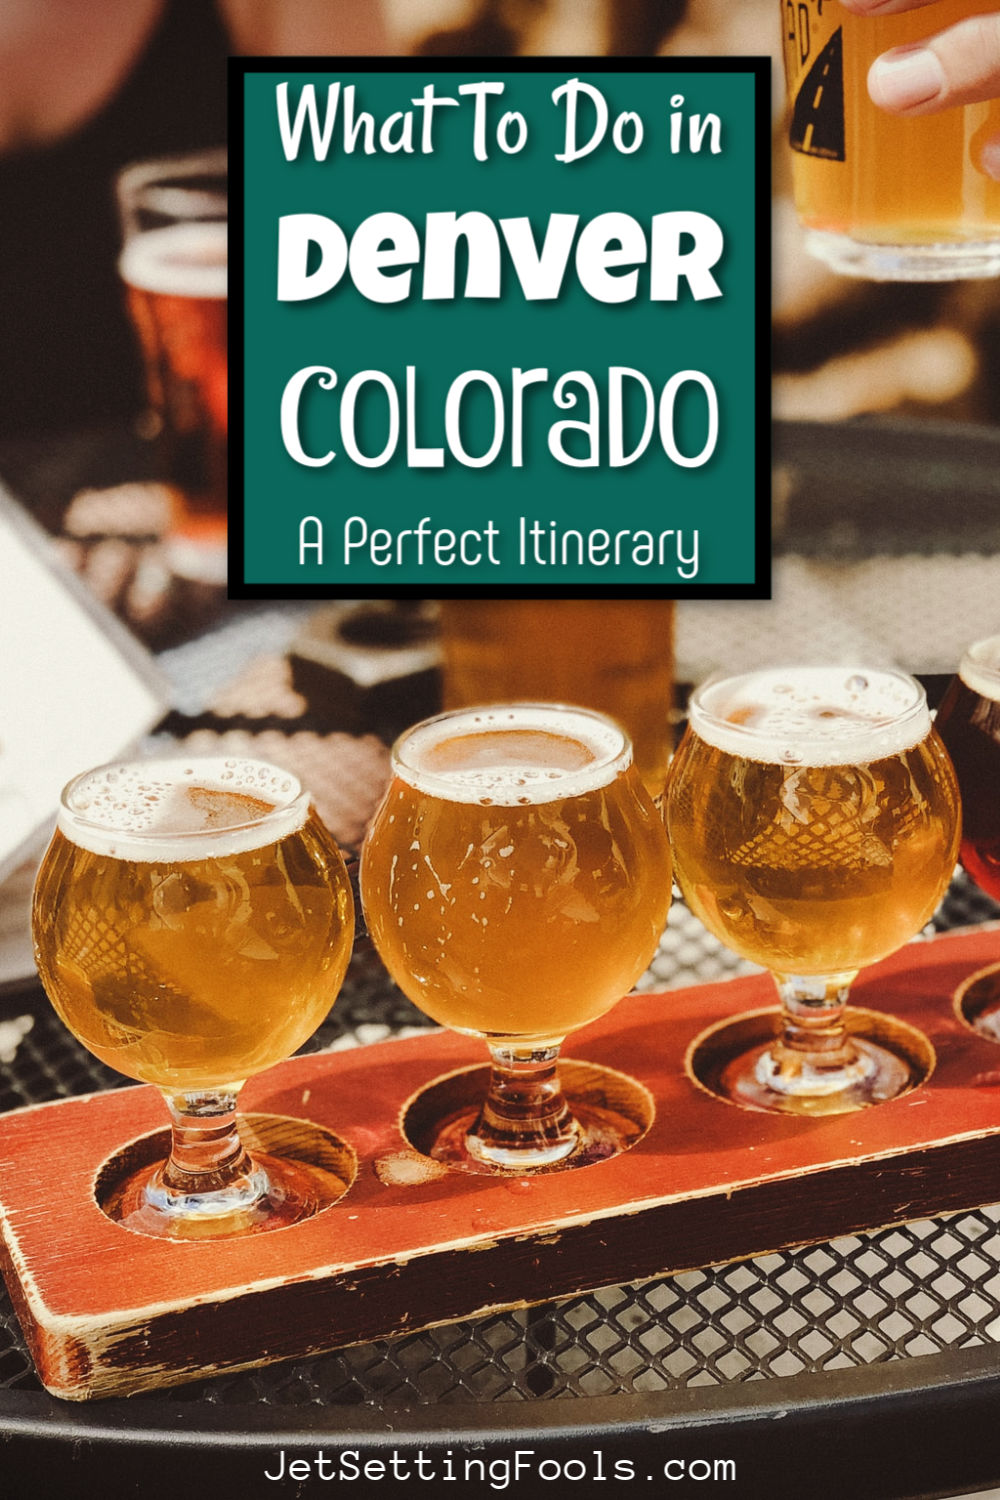 What To Do in Denver Colorado a Perfect Itinerary by JetSettingFools.com